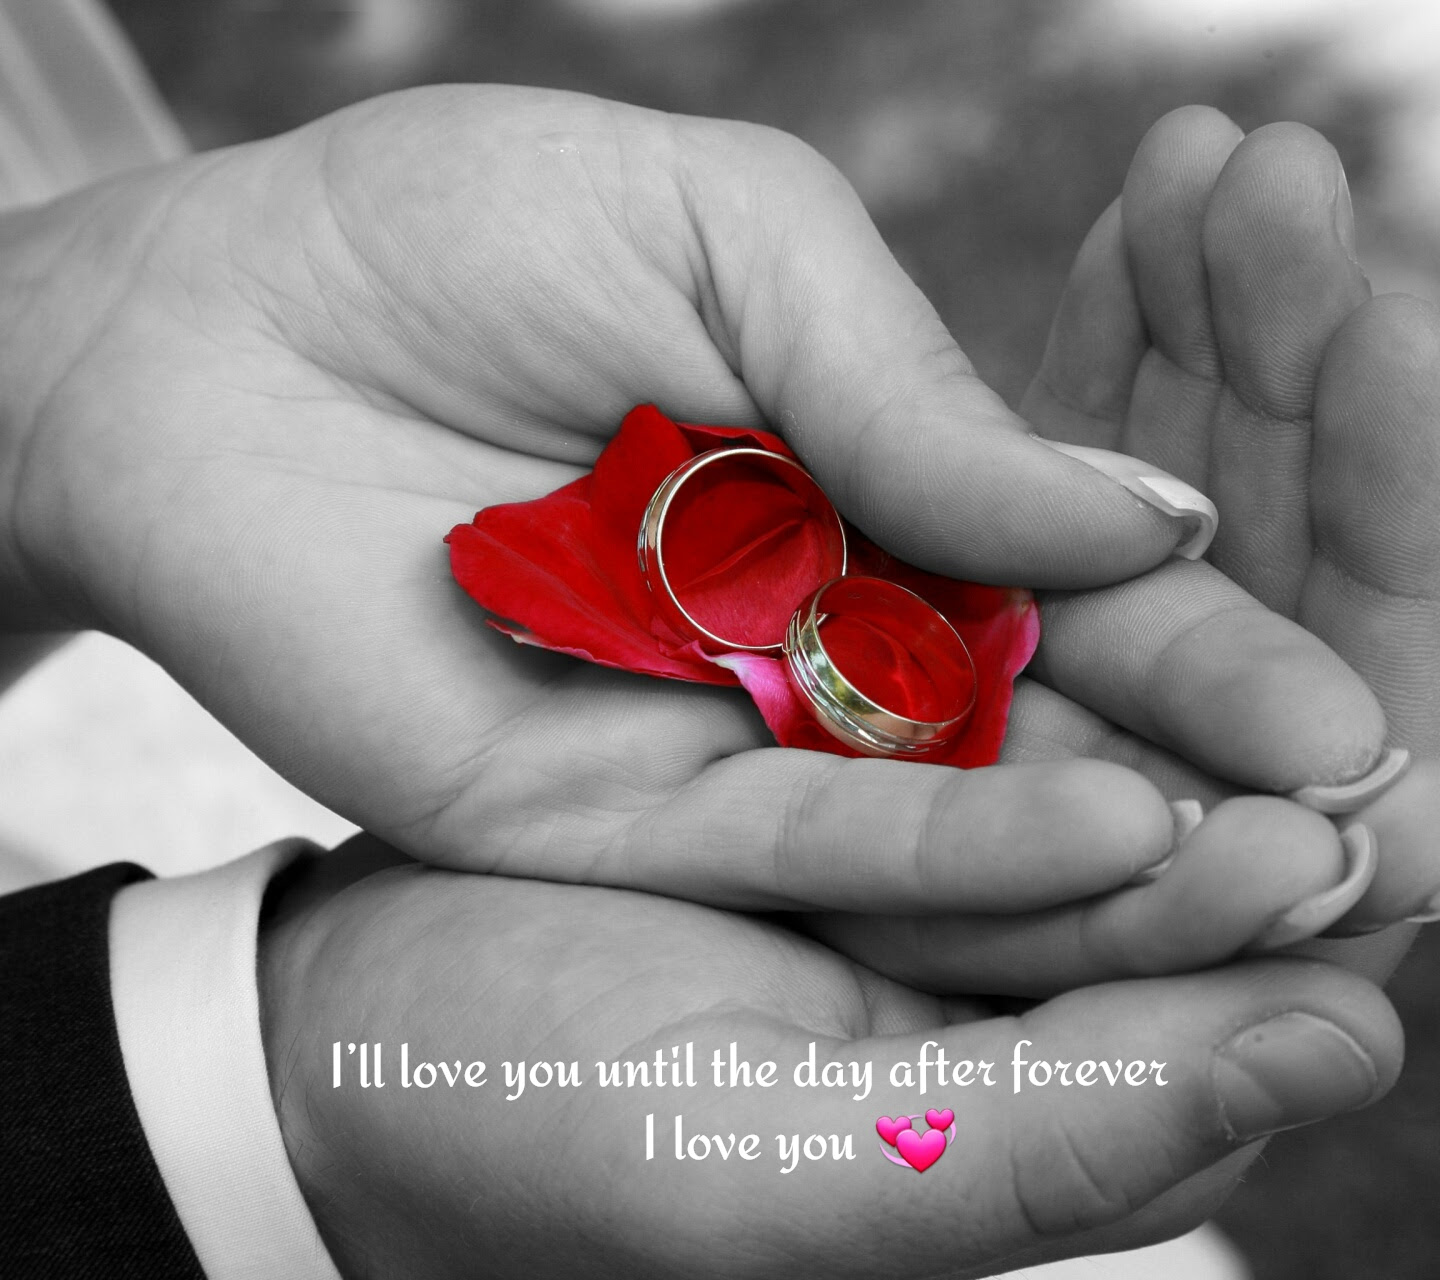 Download Untill The Day Love Forever Image Desktop Laptop